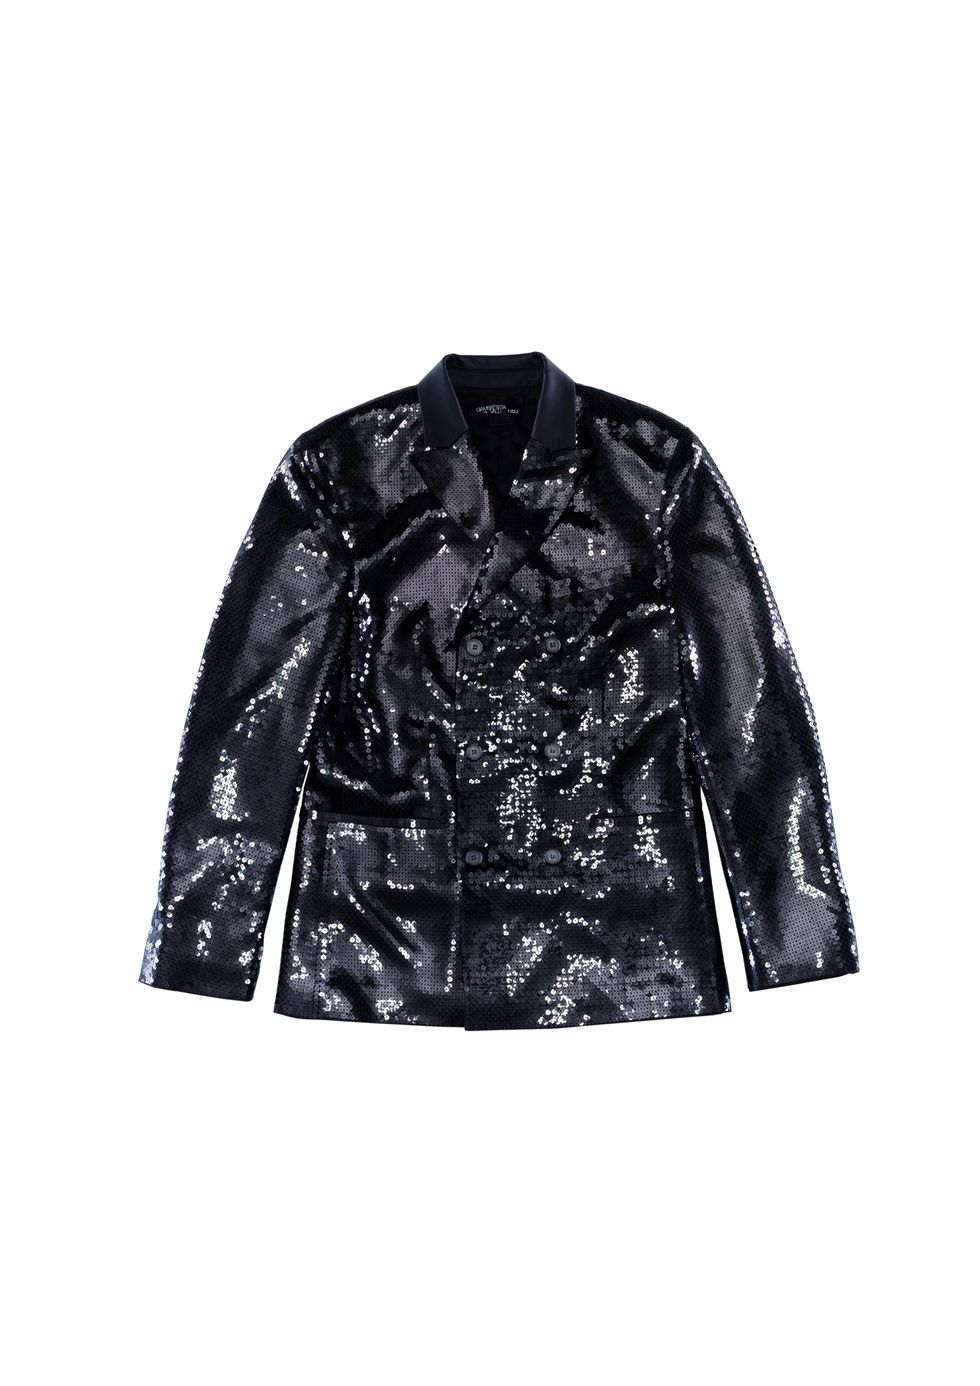 GV Sequin Jacket